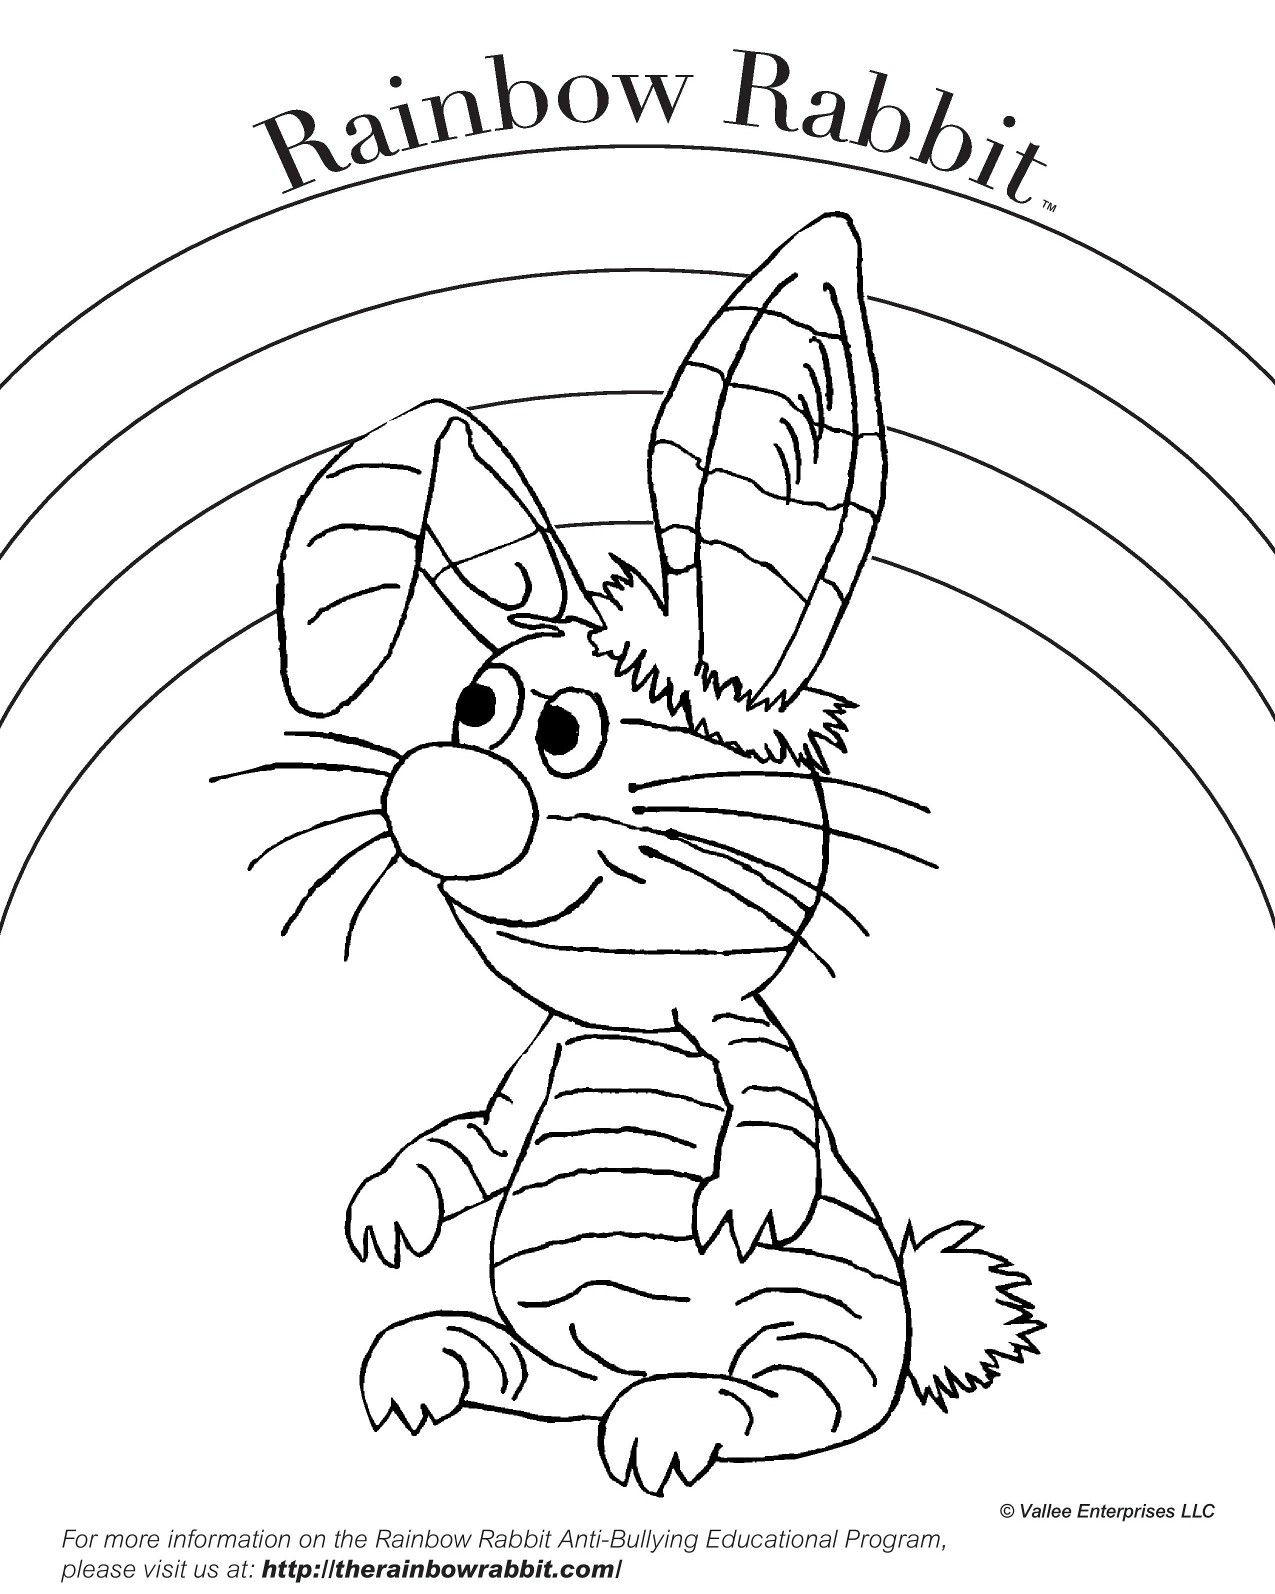 Happy Friday You Can Download Rainbow Rabbit Coloring Sheets On Out Website As Part Of Our Ba Bunny Coloring Pages Unicorn Coloring Pages Bear Coloring Pages